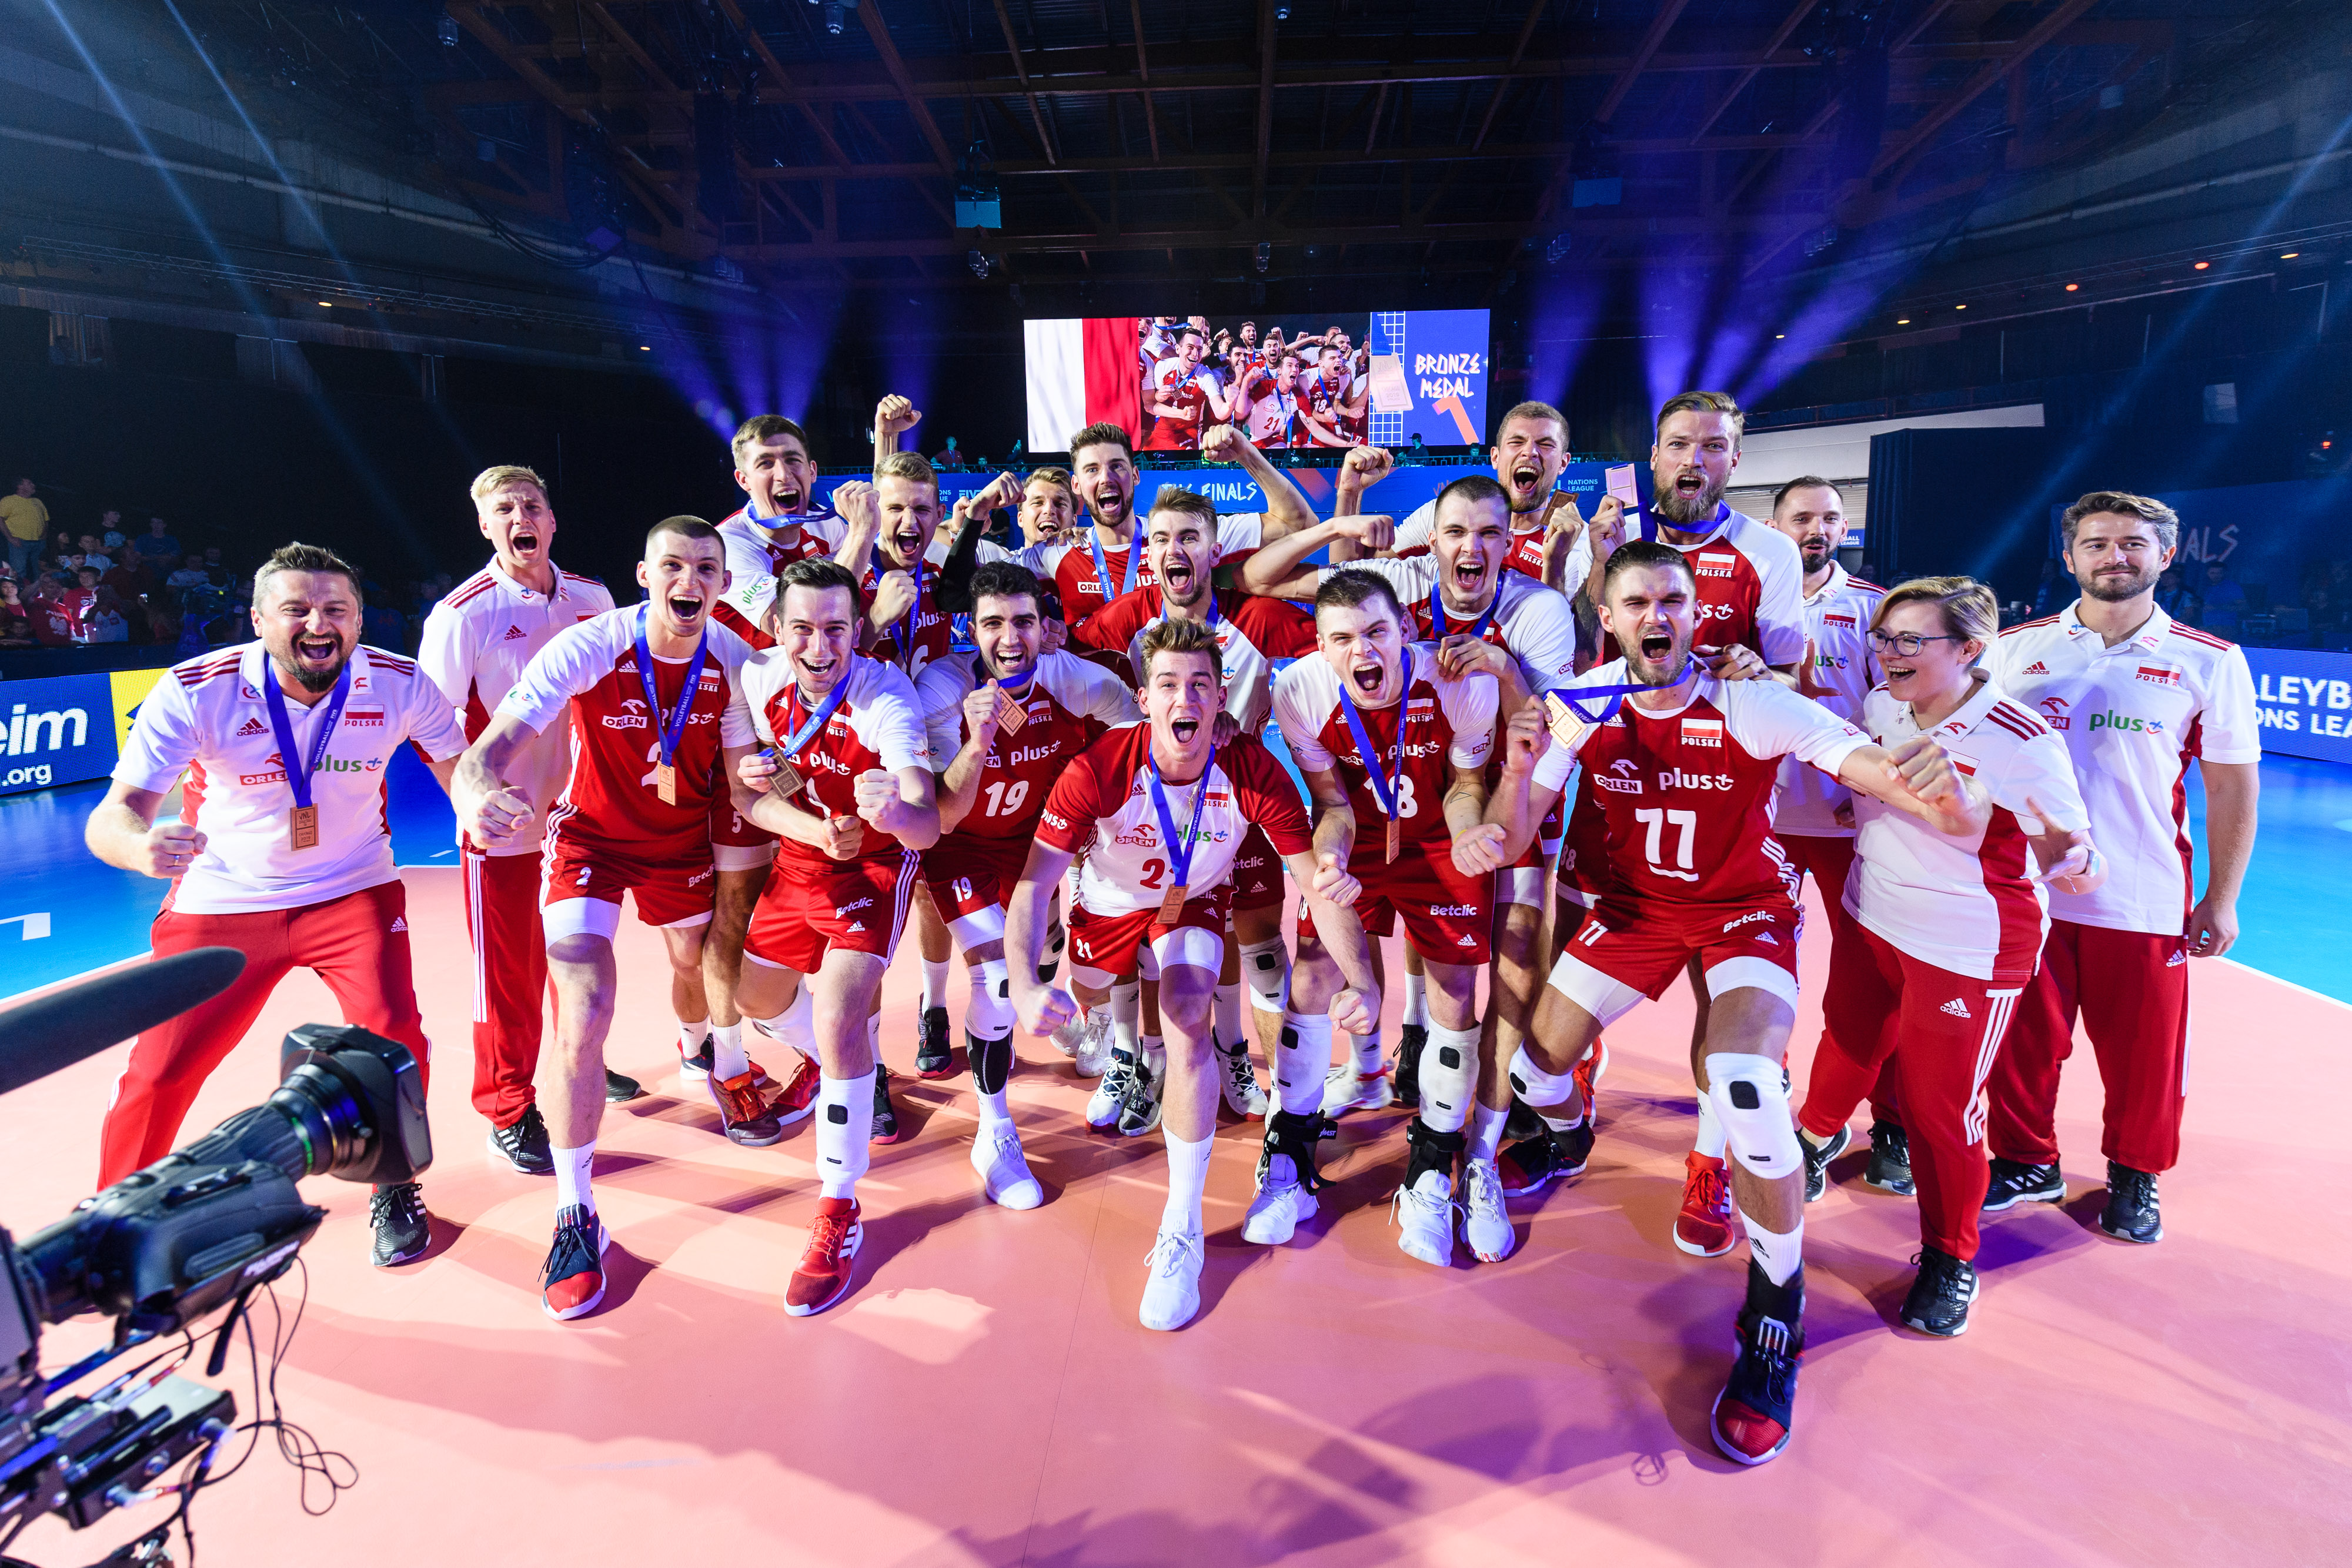 FIVB Tokyo Volleyball Qualification 2019 - More drama on the way as men's qualifiers for Tokyo 2020 begin on Friday